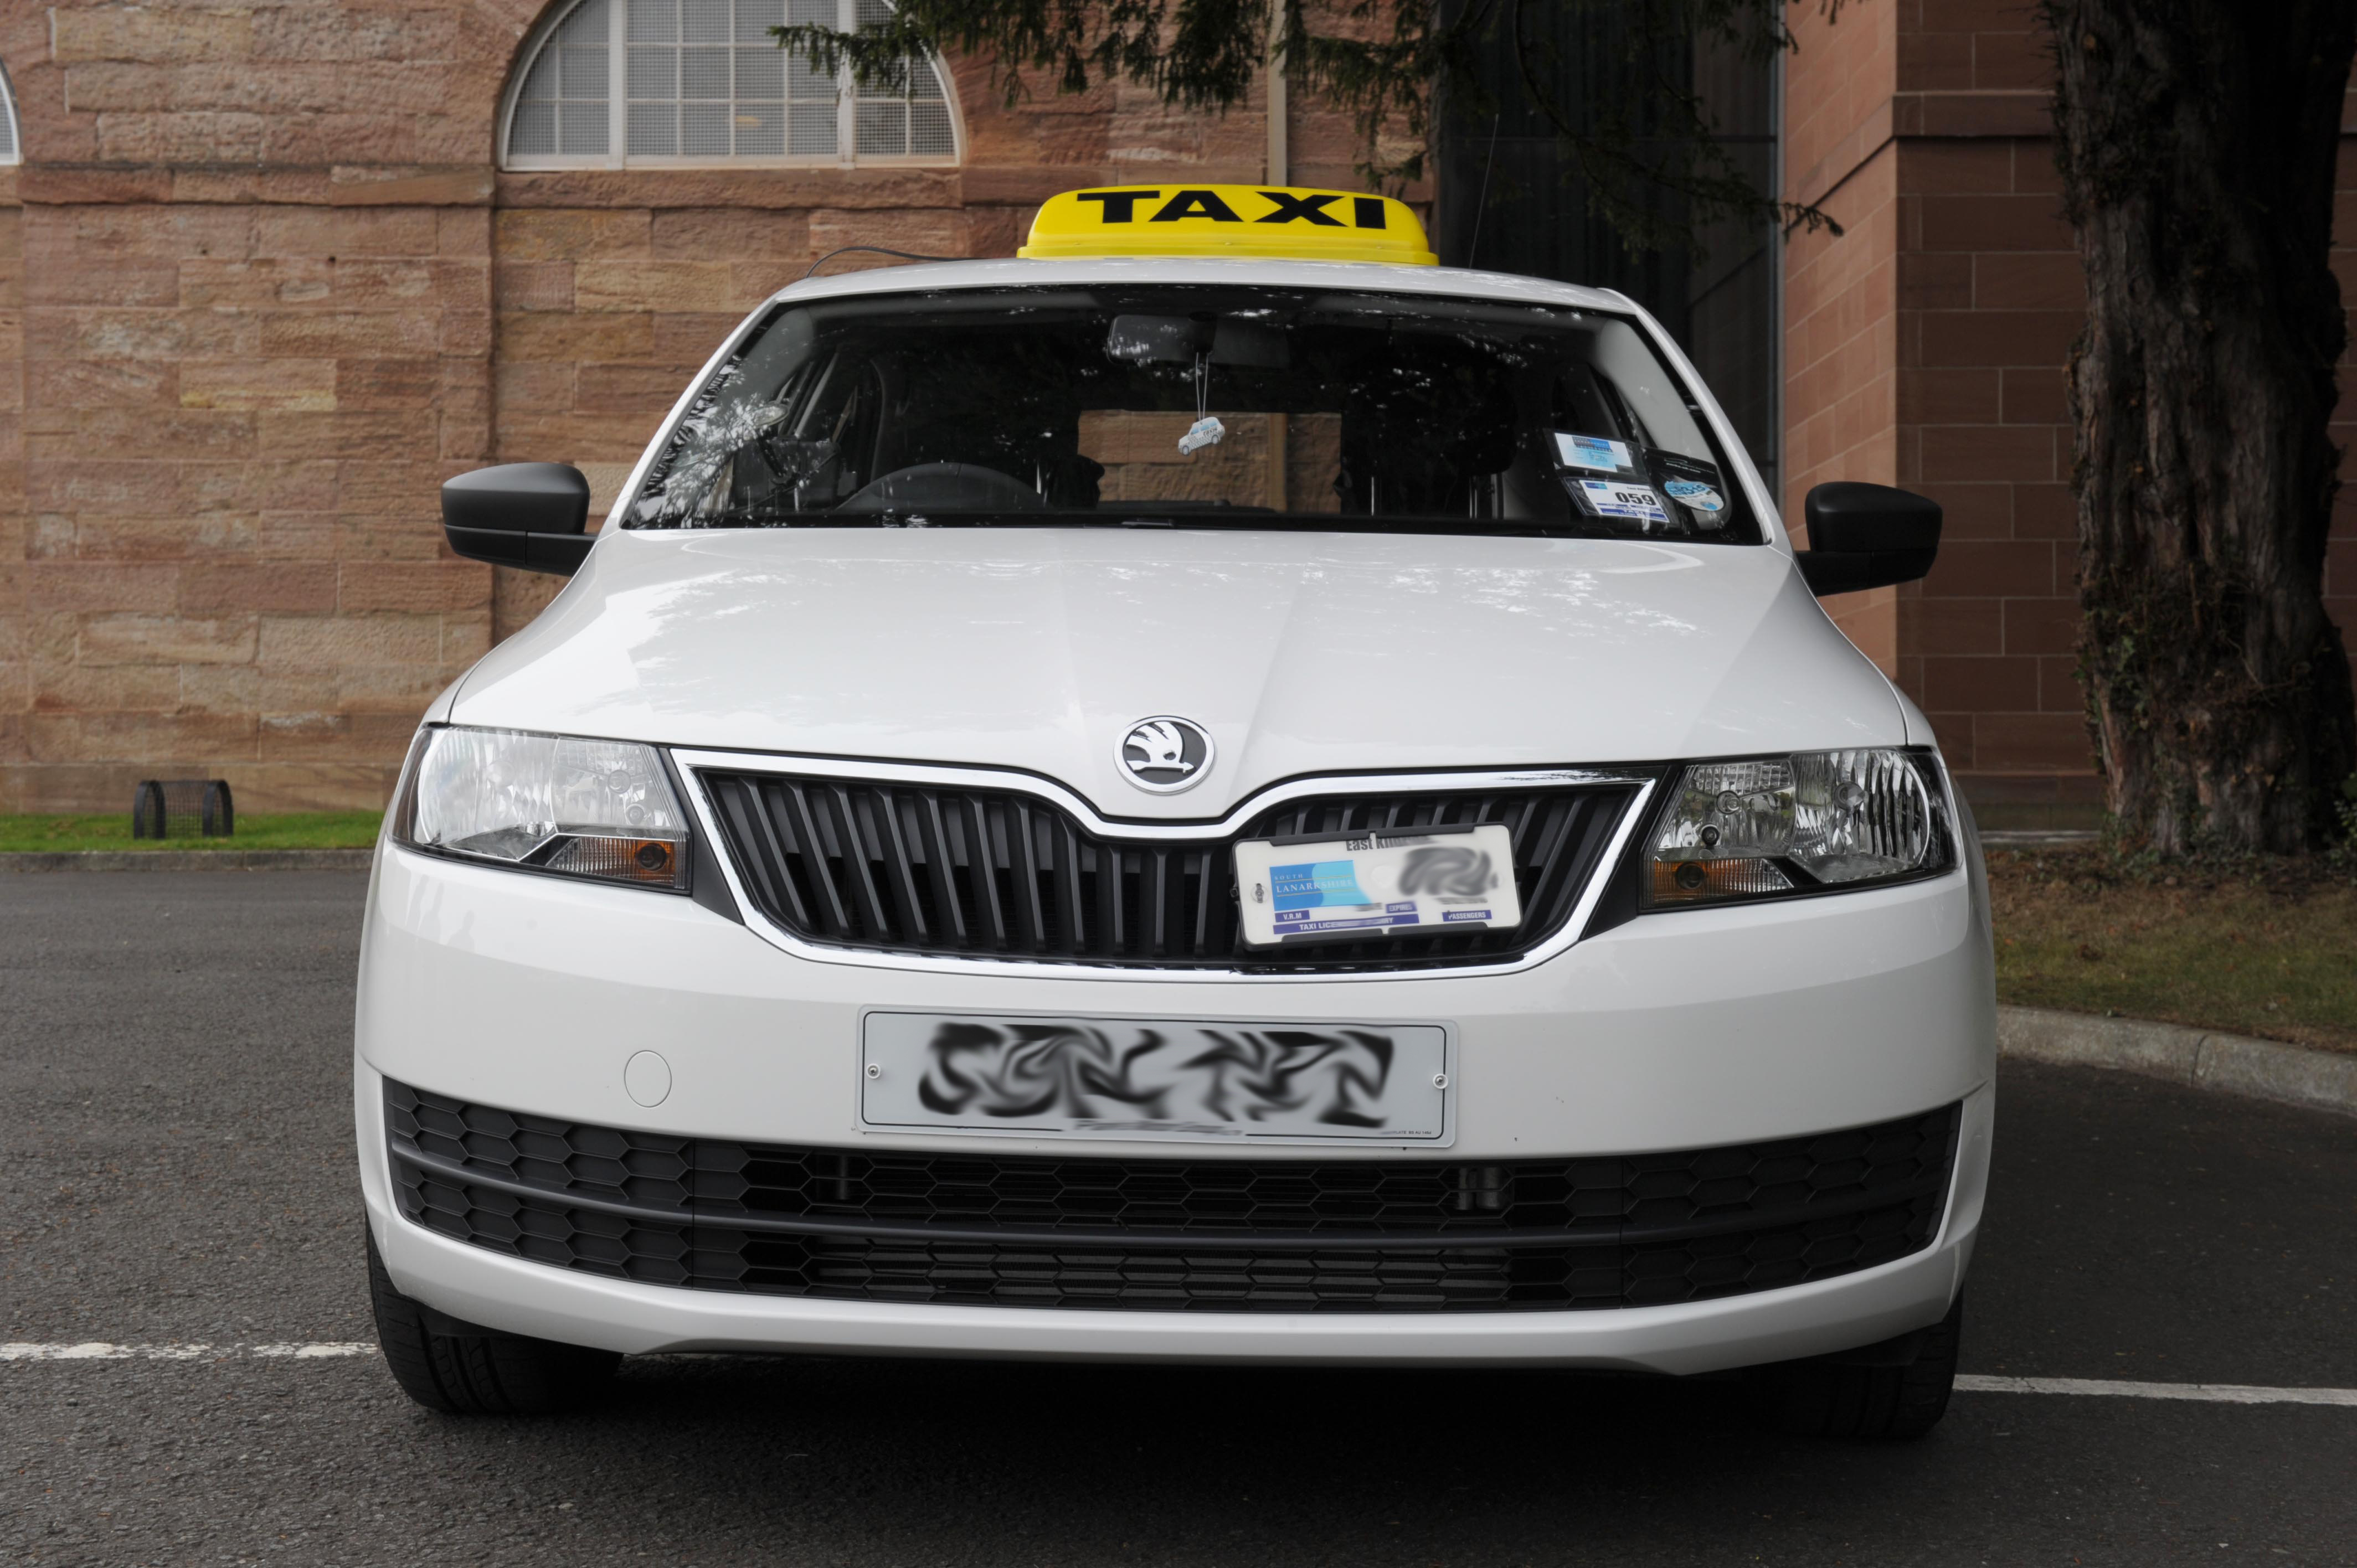 Taxi with roof sign and front plate